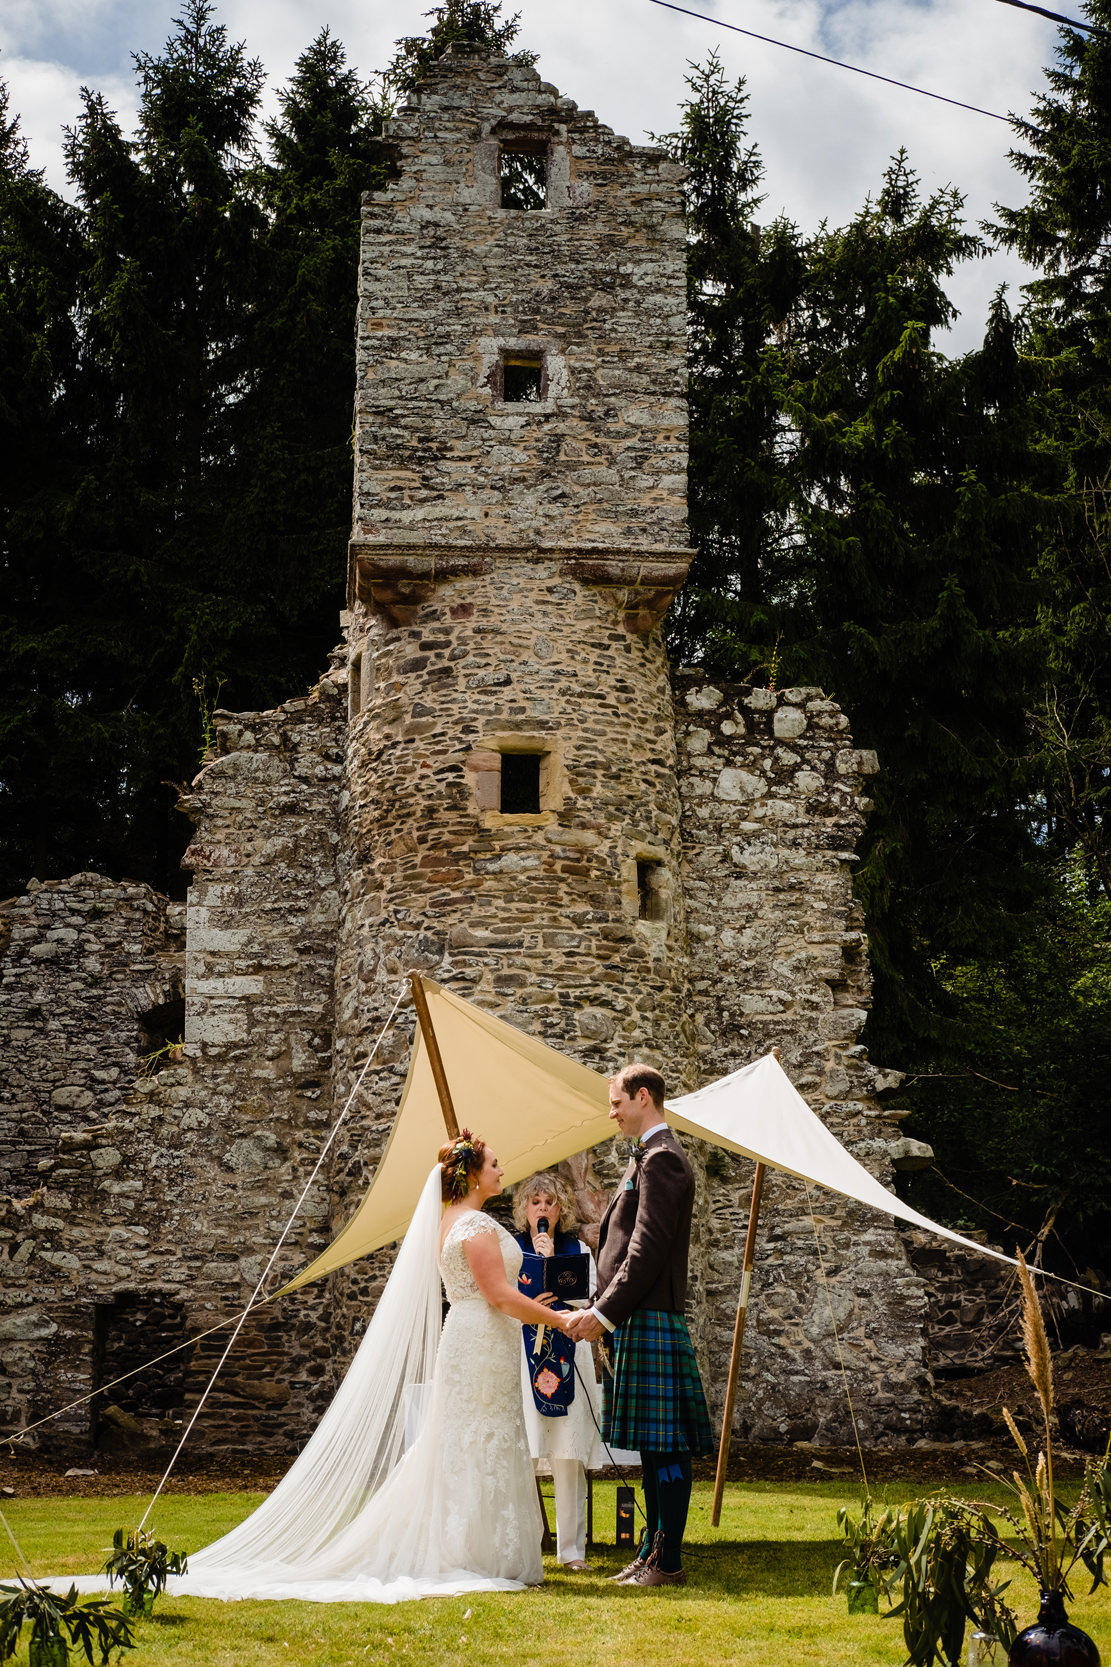 wedding ceremony in front of castle ruins. scotland wedding photography by emma and rich.